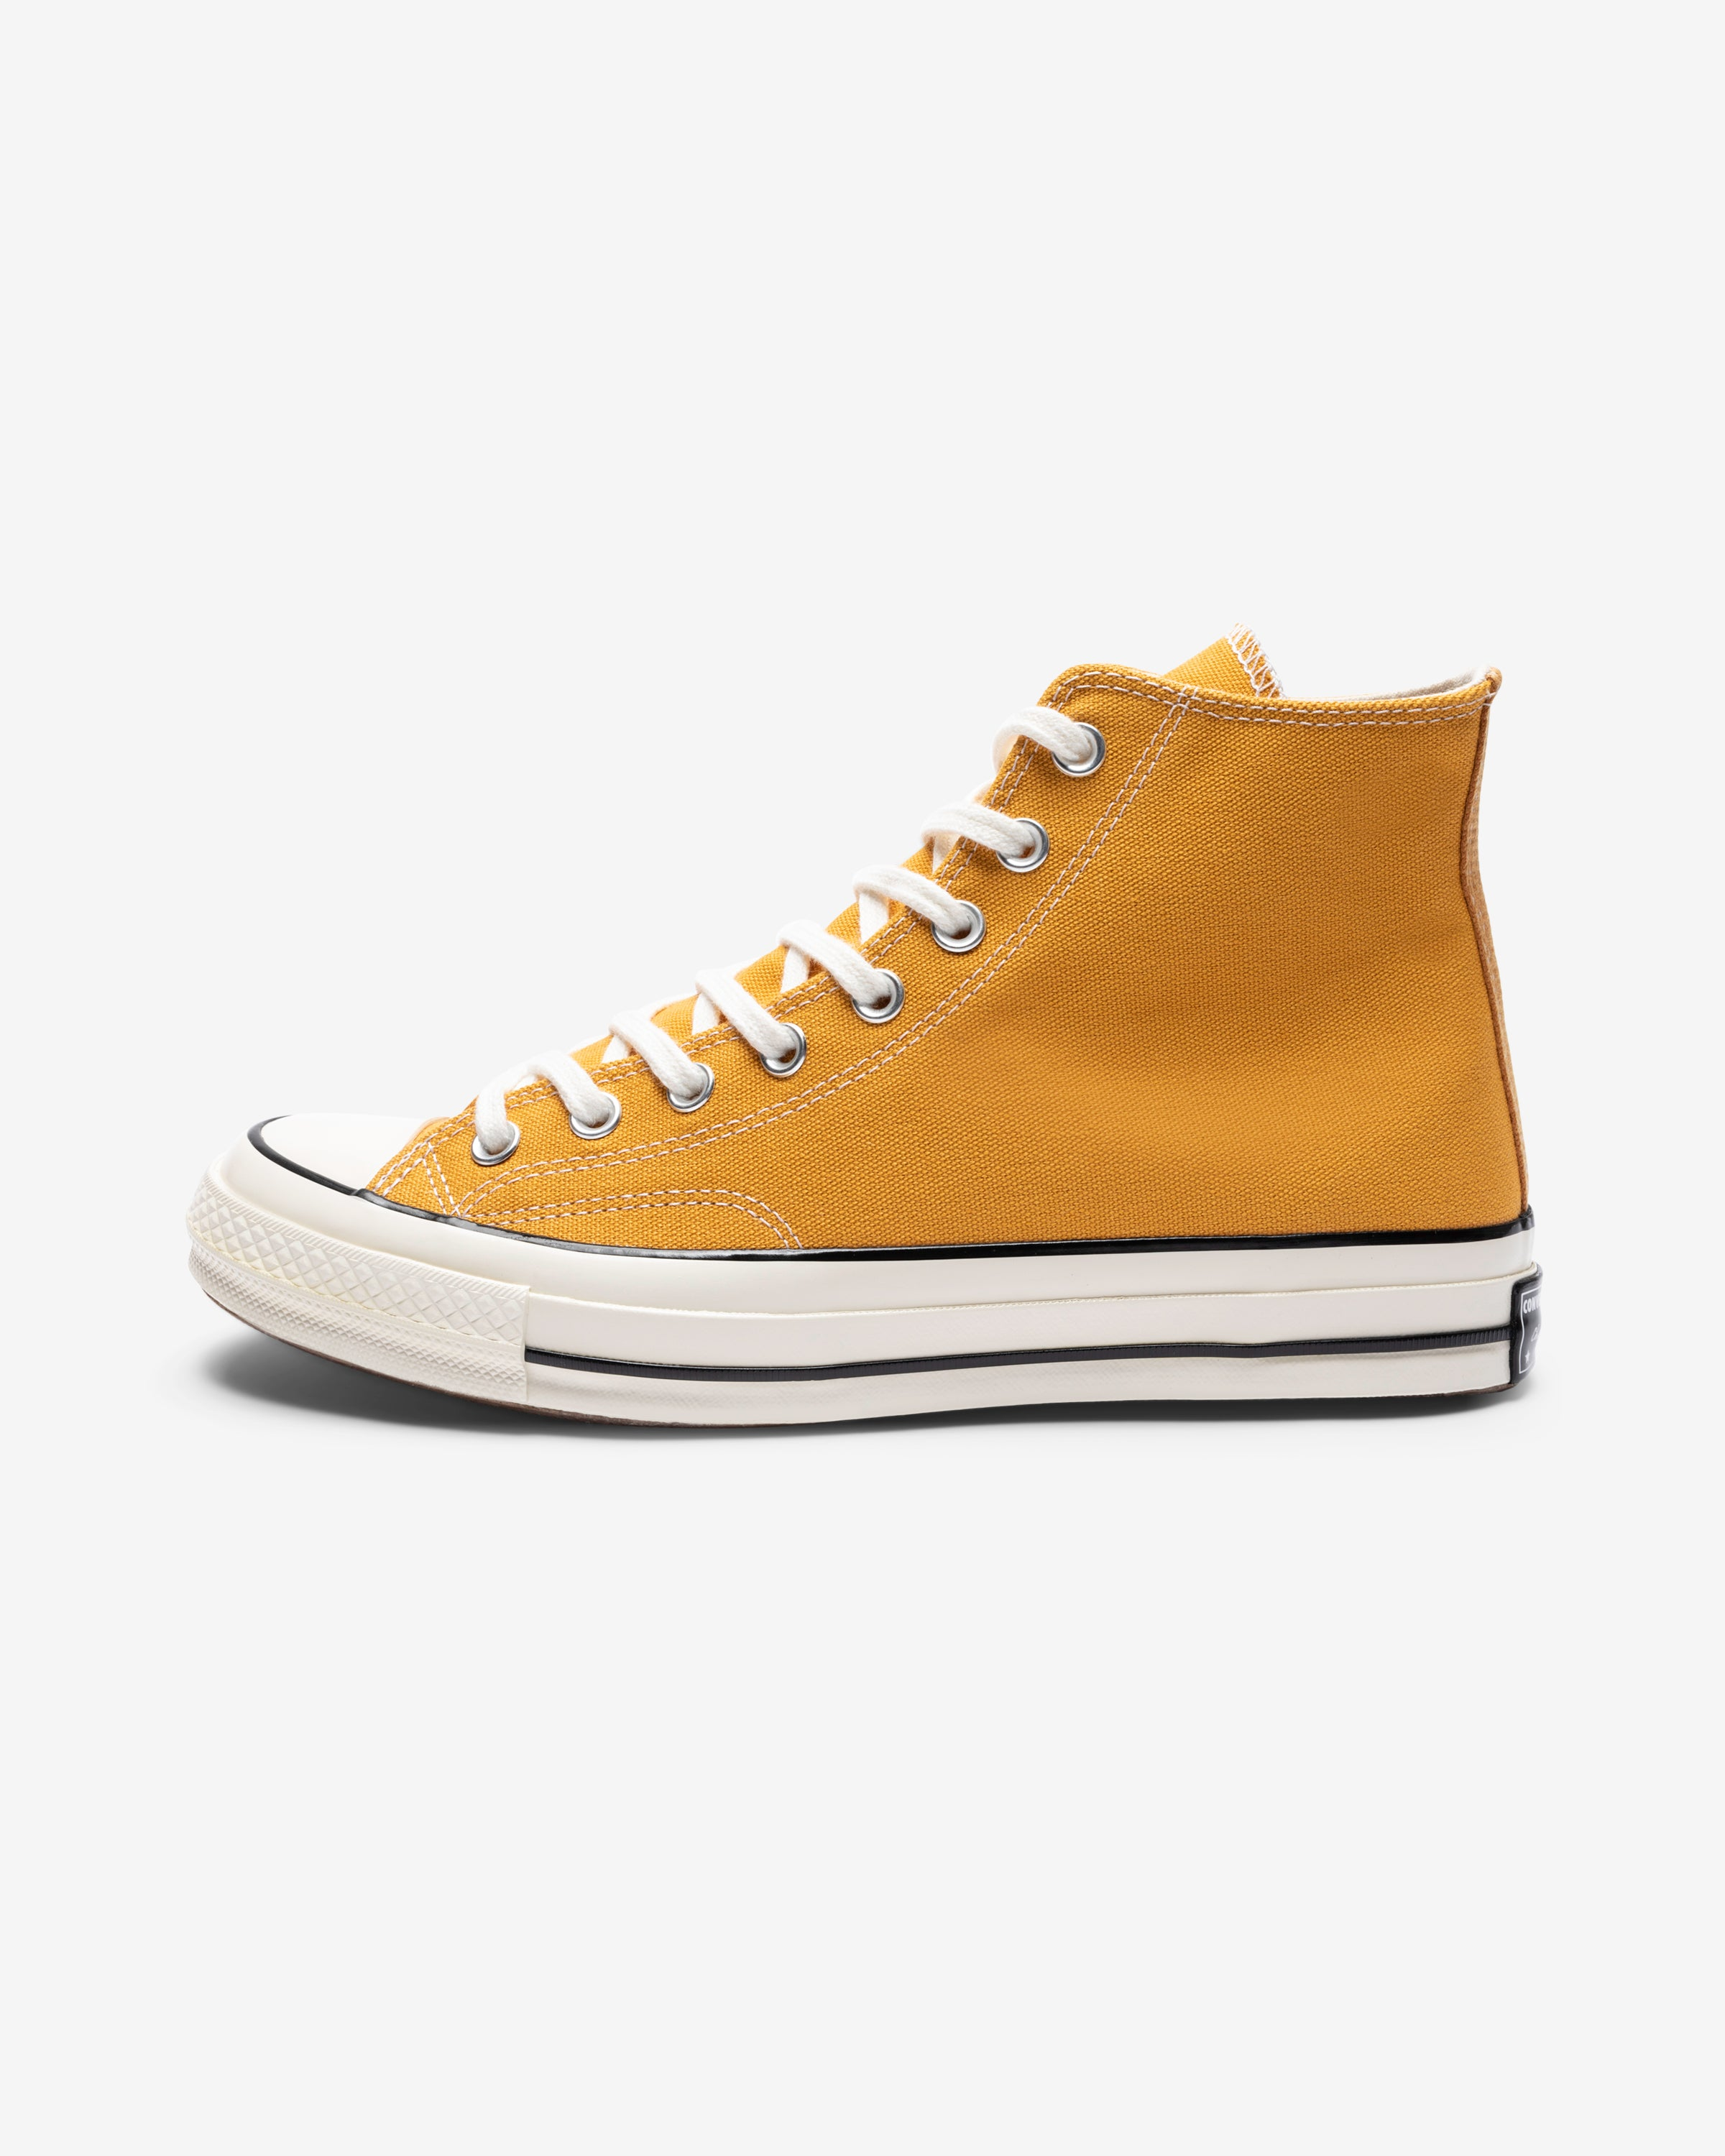 CHUCK 70 HI - SUNFLOWER/BLACK/EGRET